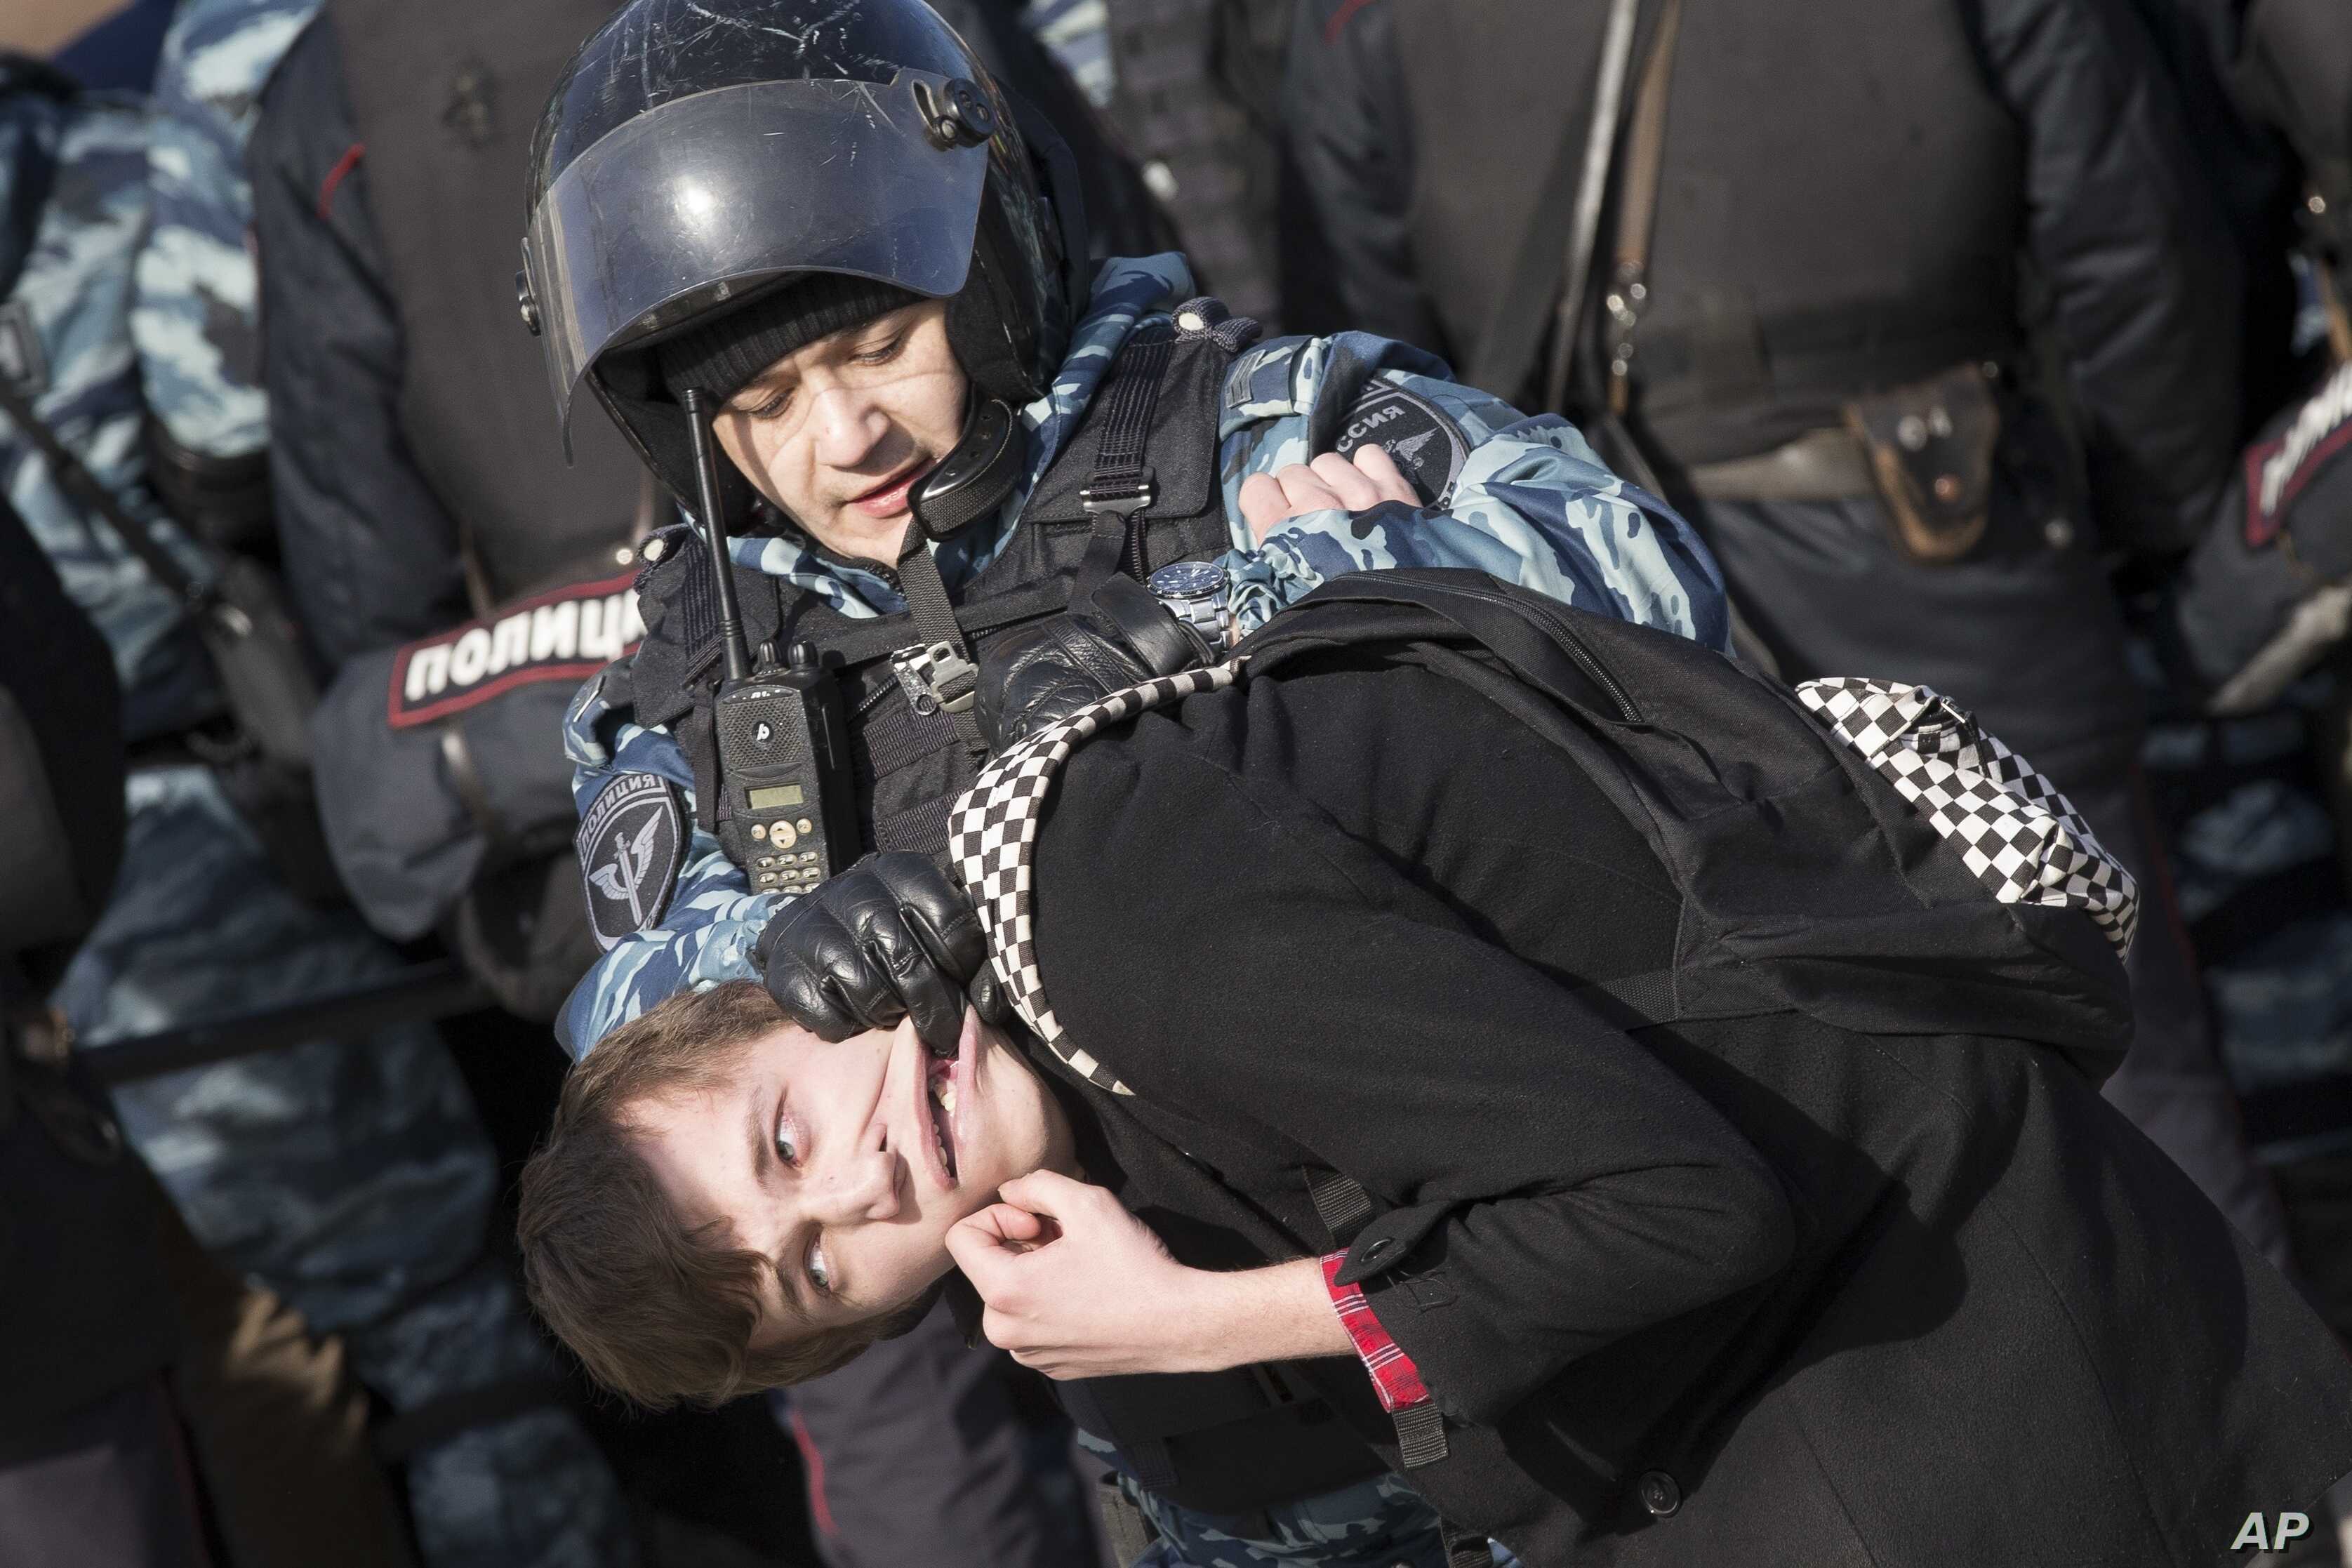 Police detain a protester in downtown Moscow, Russia, Sunday, March 26, 2017.